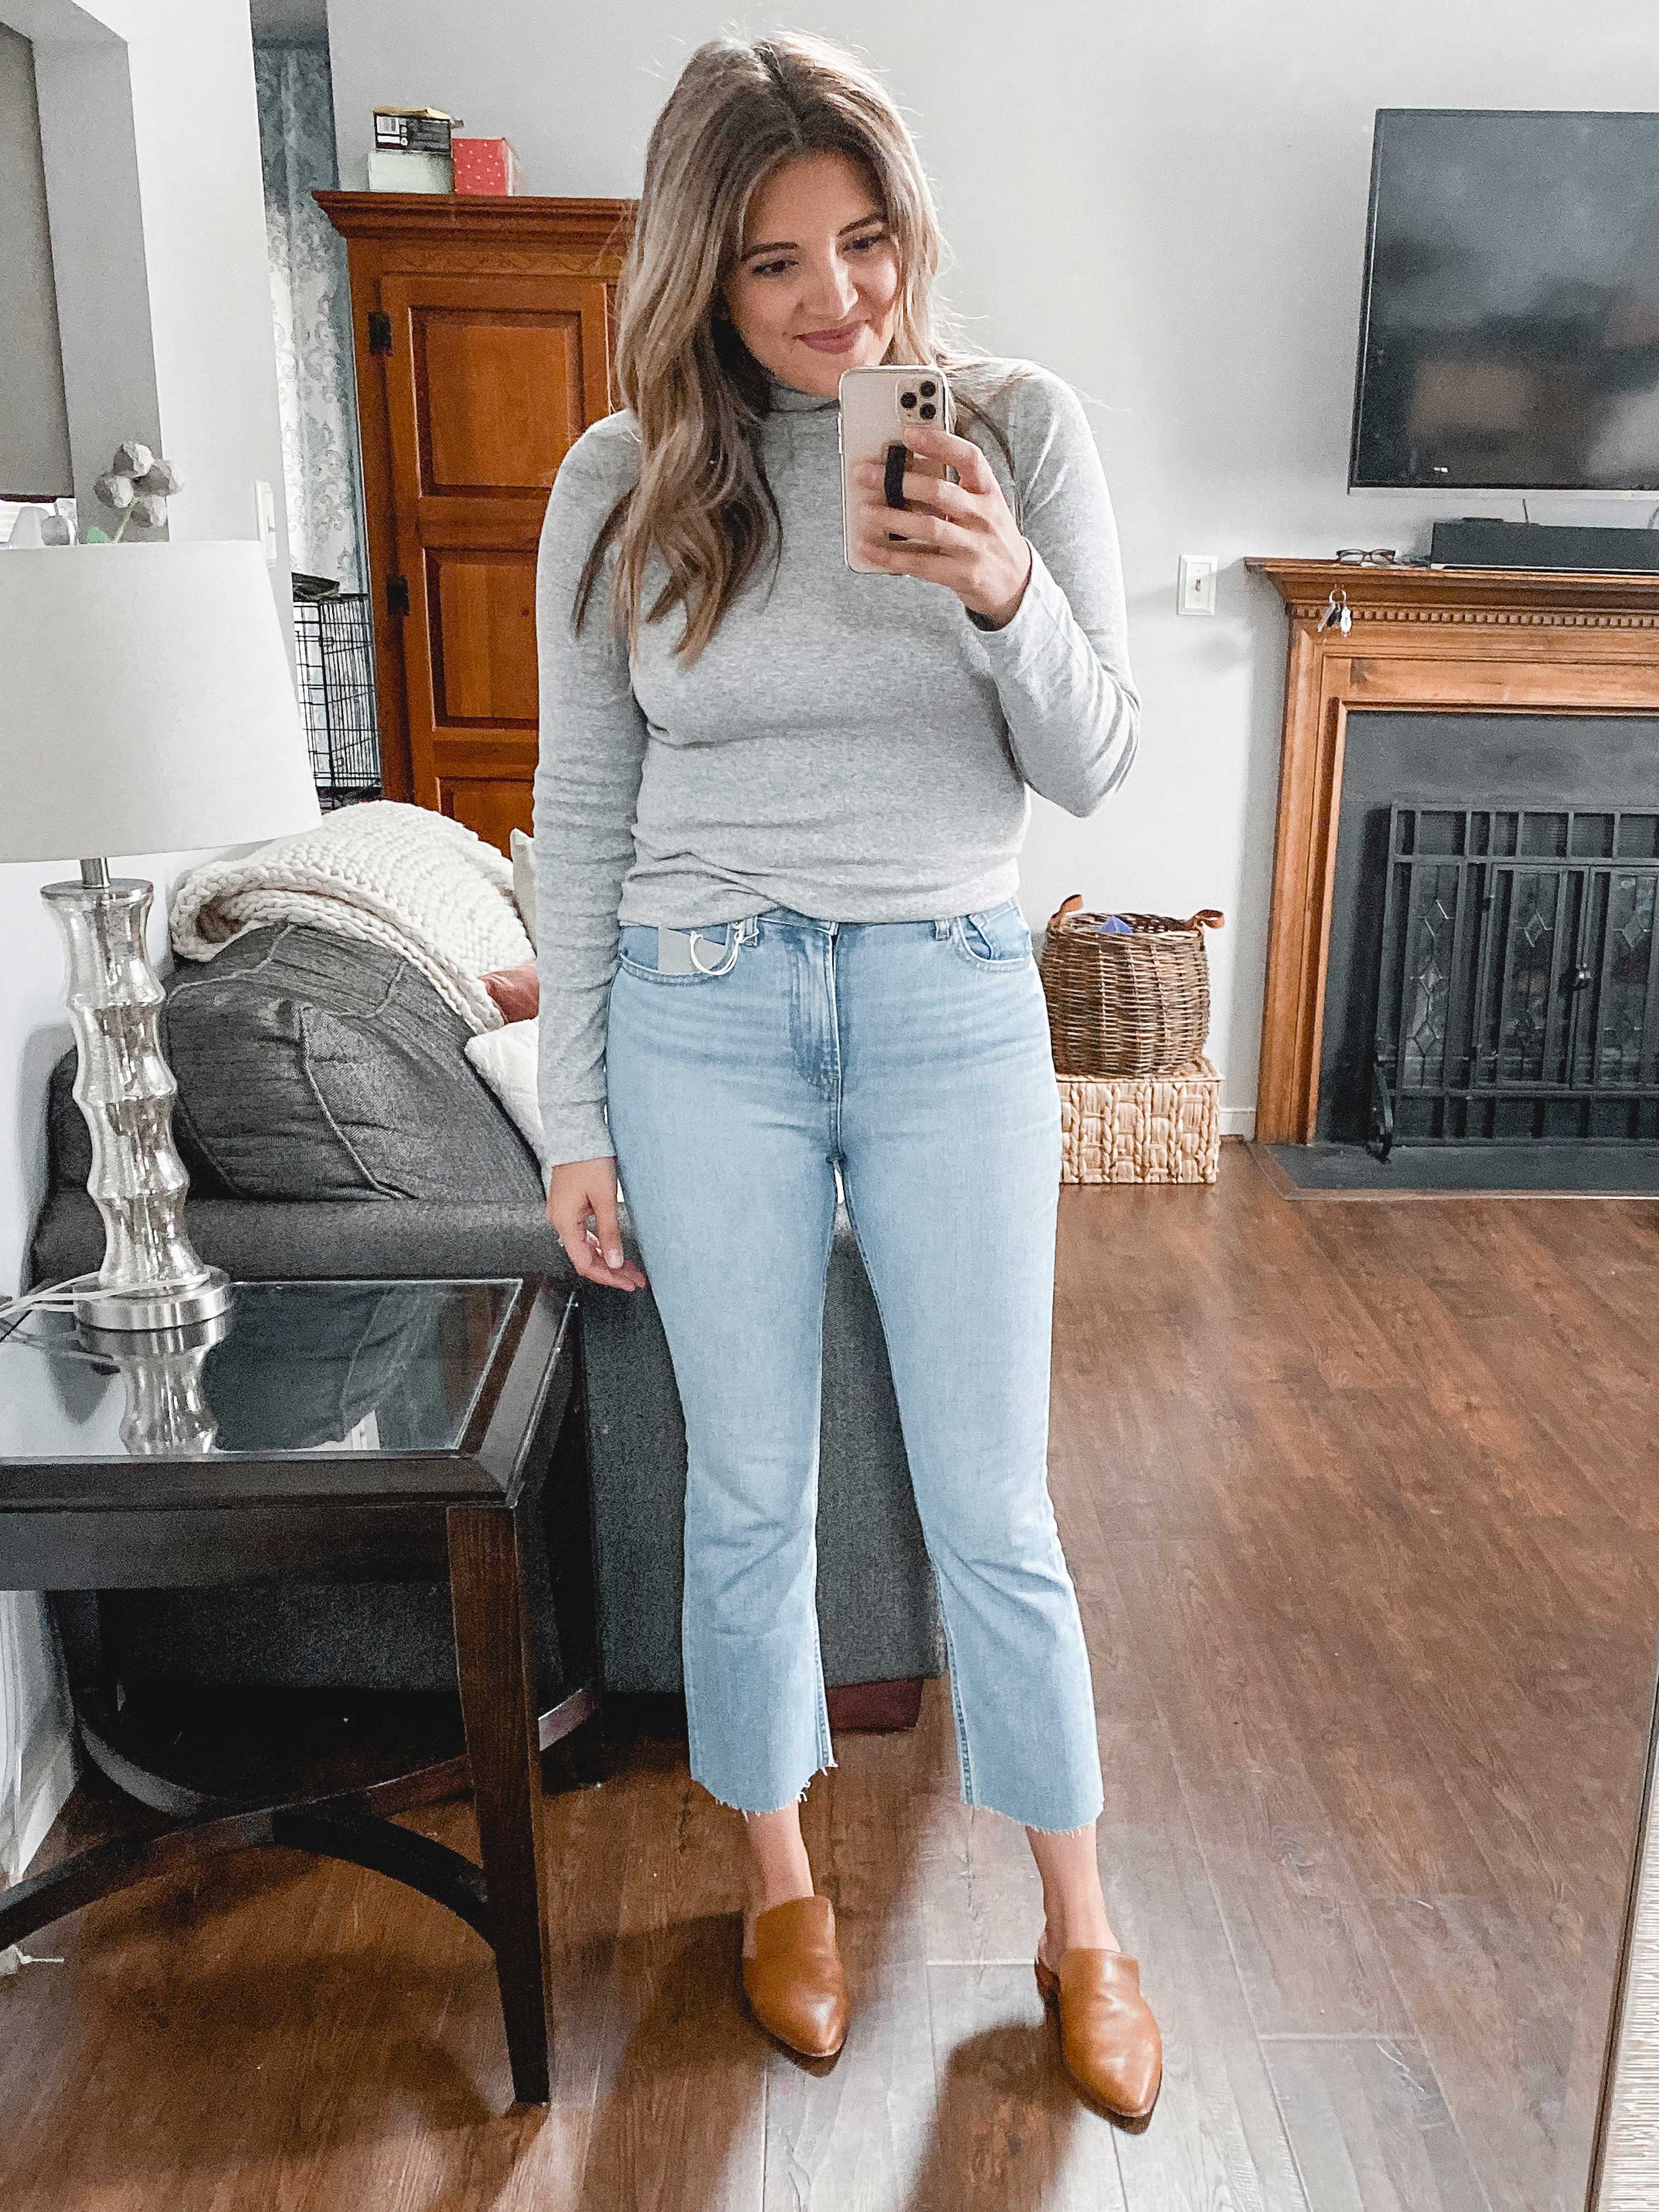 Richmond Virginia blogger, Lauren Dix, tries on seven styles of Everlane jeans and fall tops in her Everlane try on session!